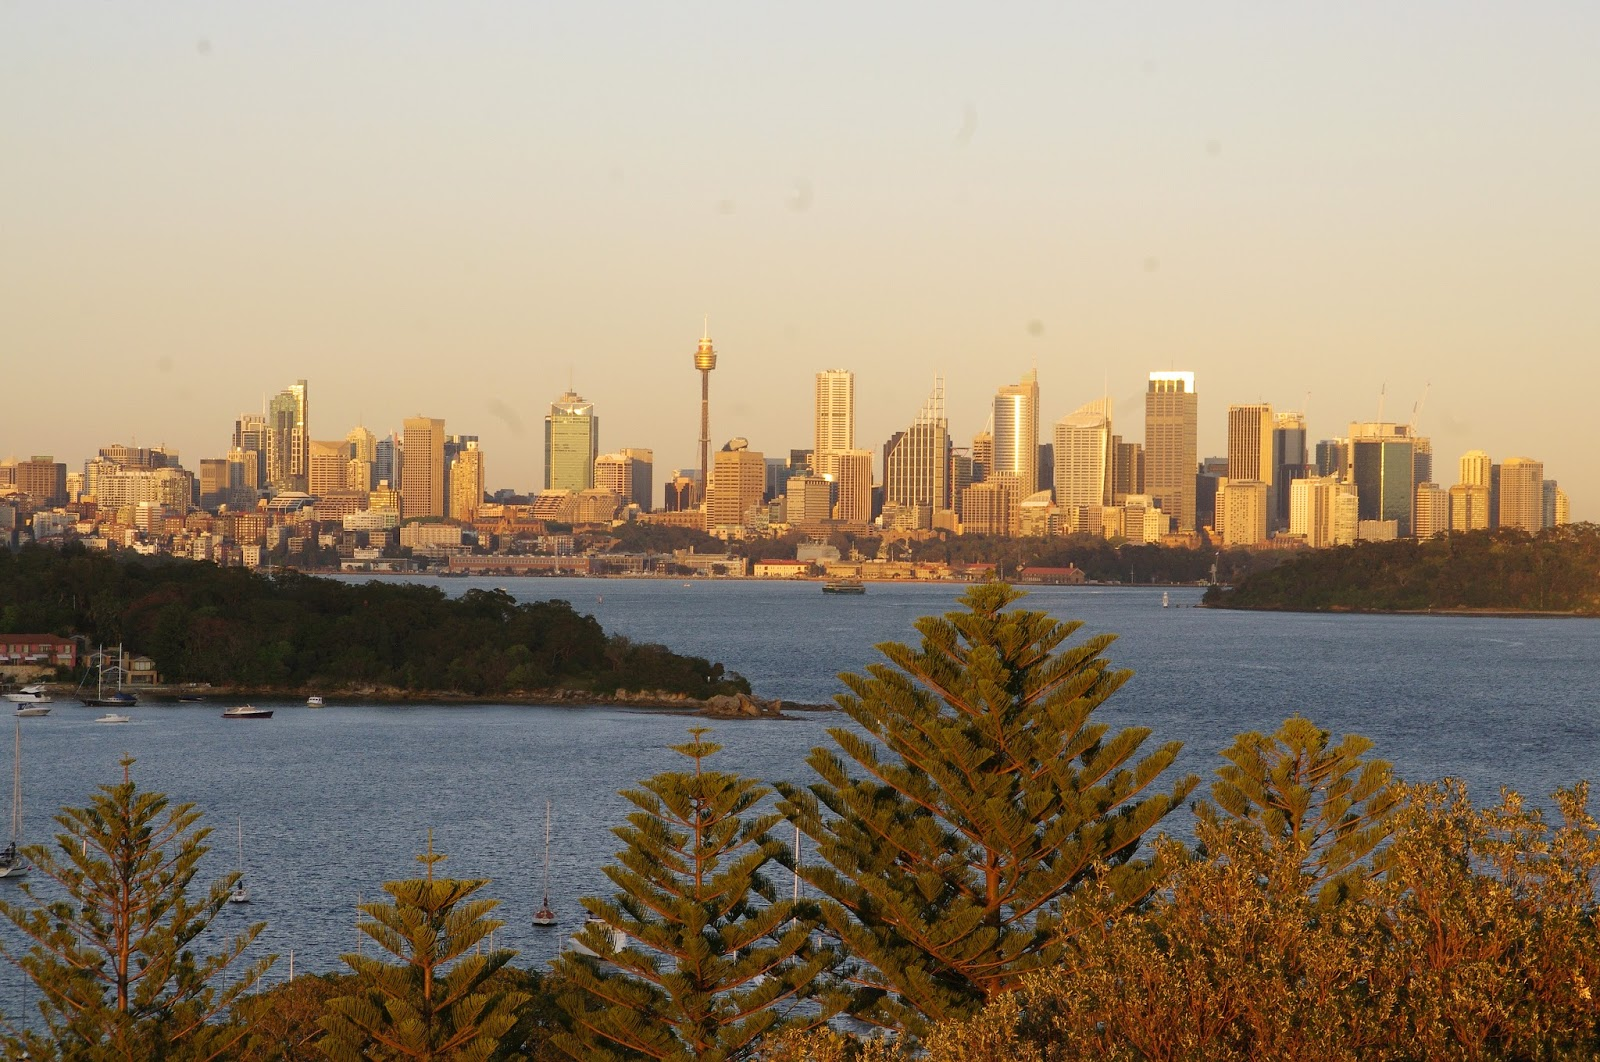 Sydney skyline at sunrise